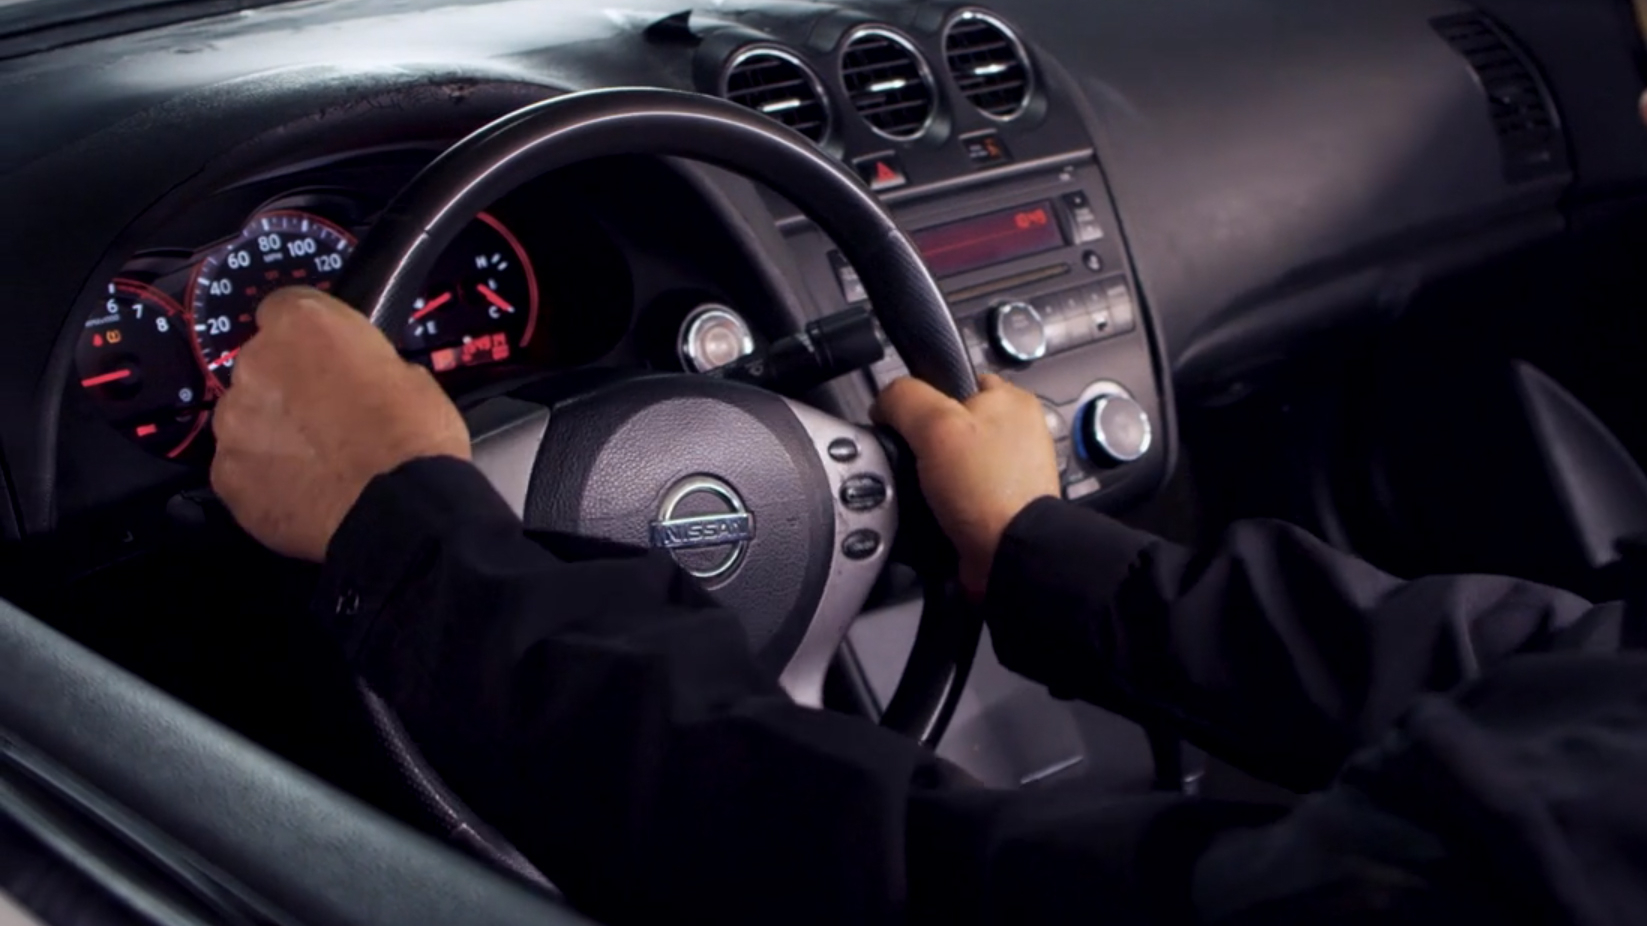 Common Power Steering Problems